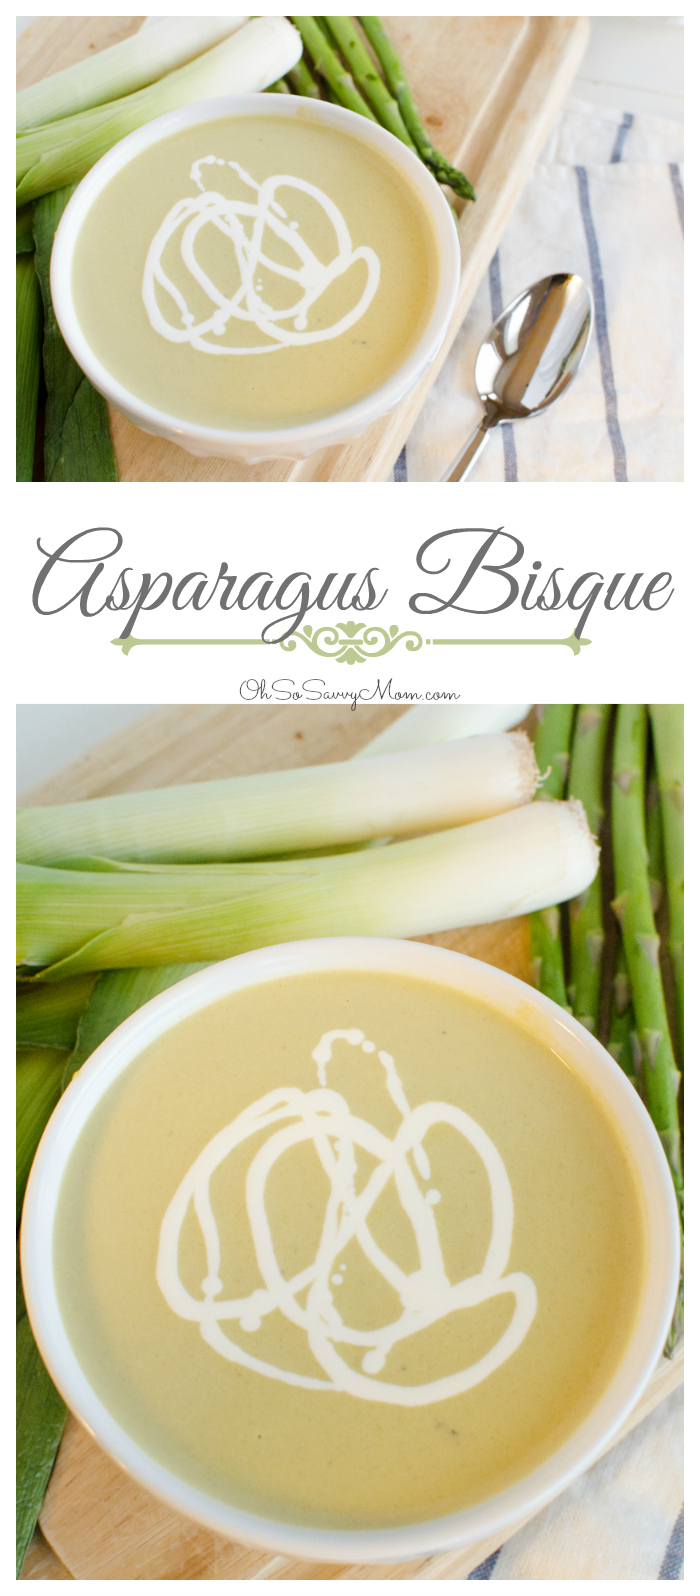 Asparagus Bisque Recipe is perfect when you're in the mood for soup